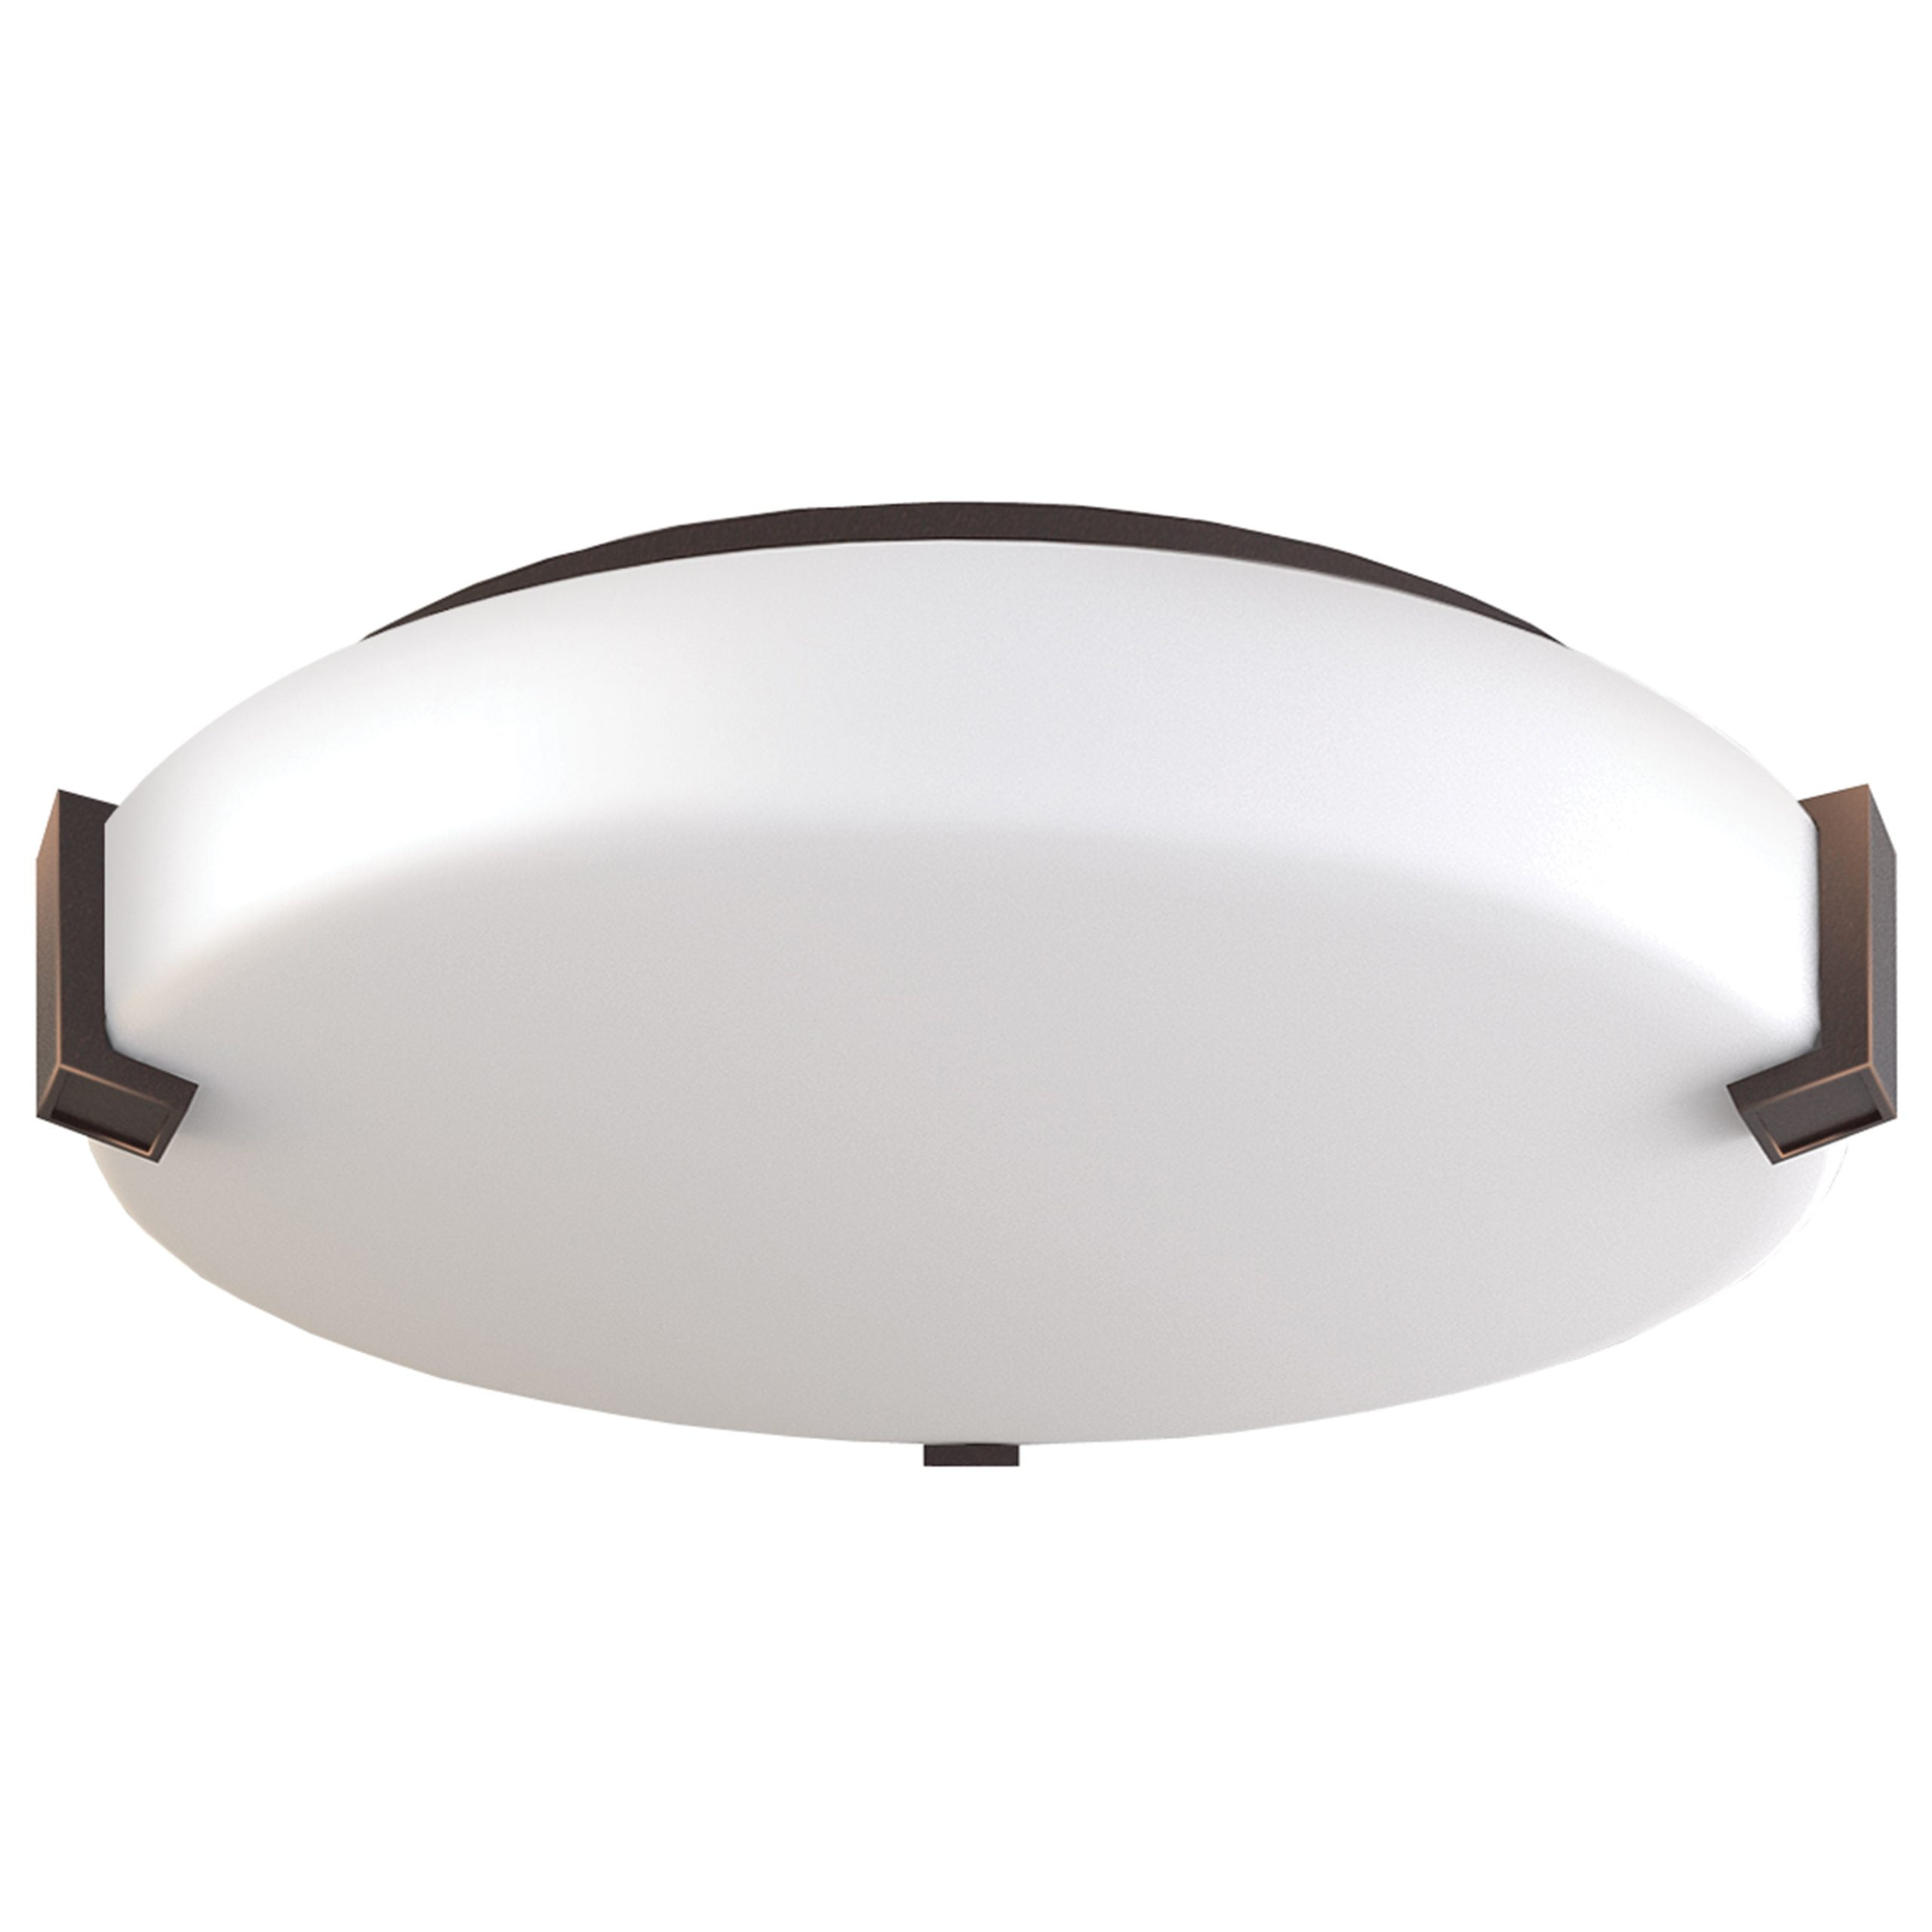 "16""W Dark Bronze Ceiling Light with Frosted Acrylic Shade"